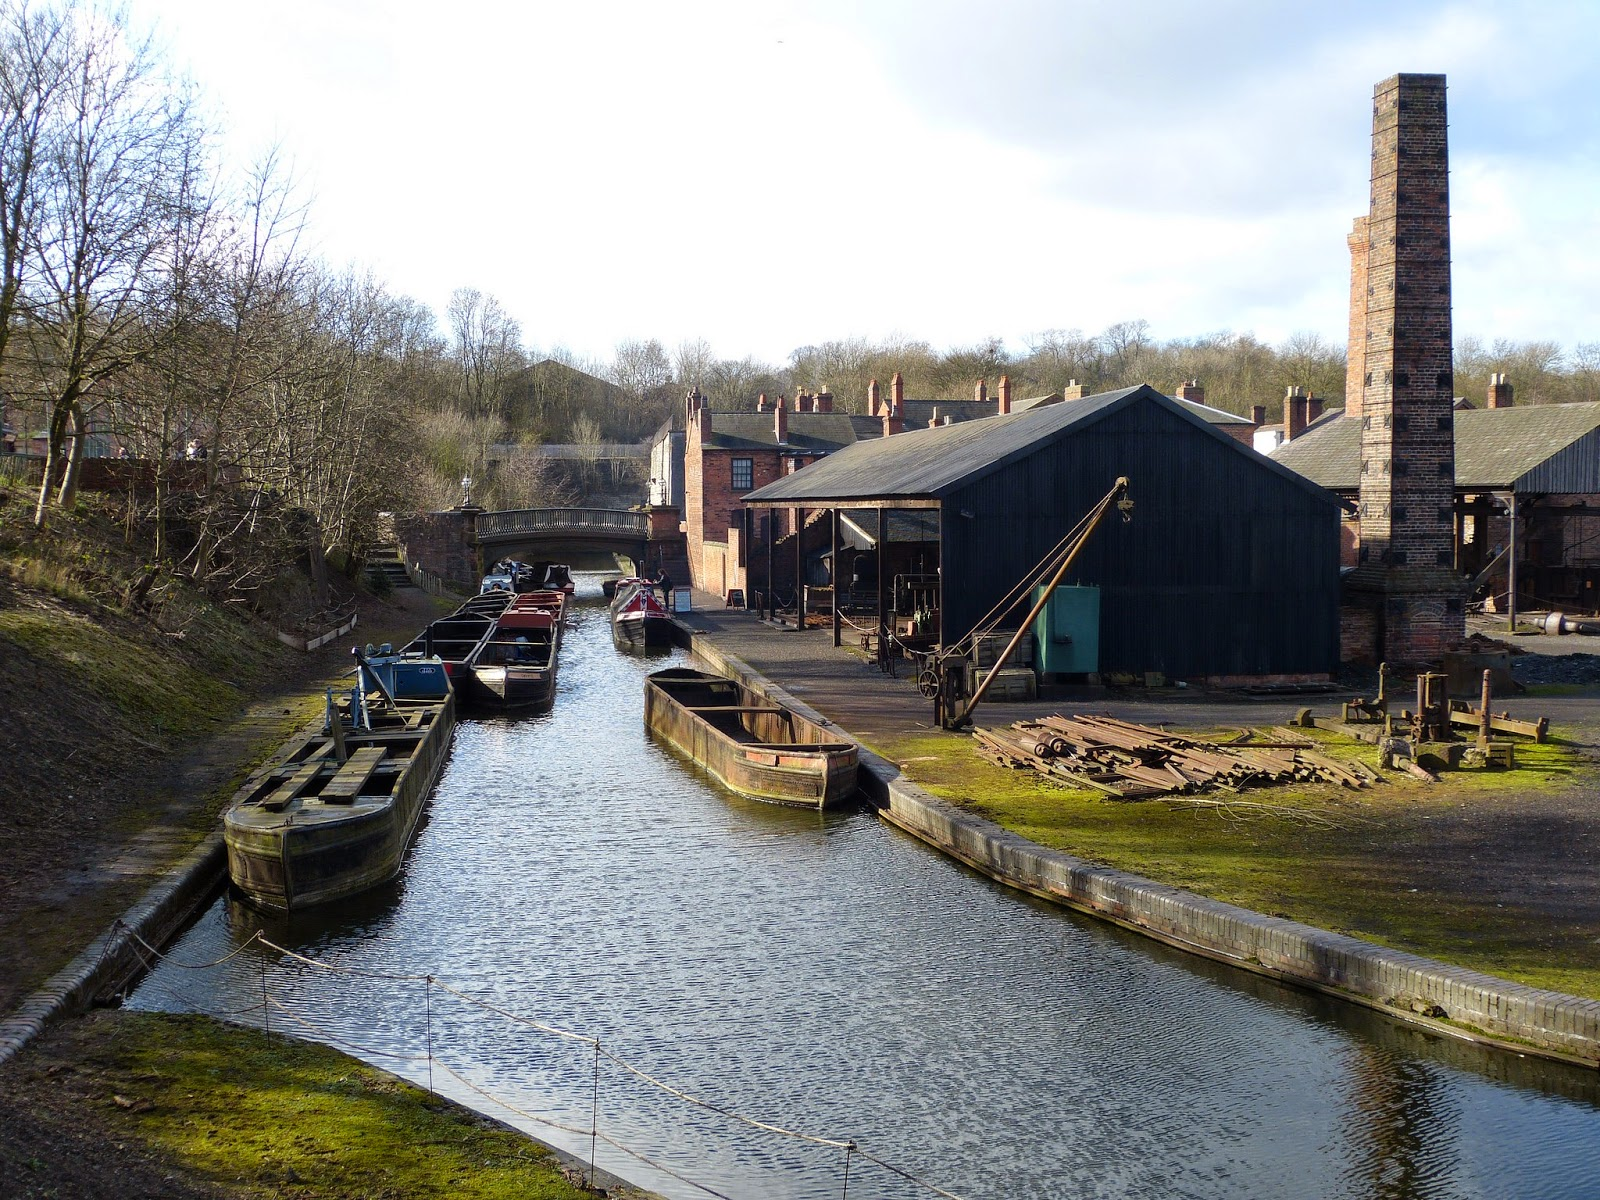 Canal at the Black Country Living Museum, Dudley